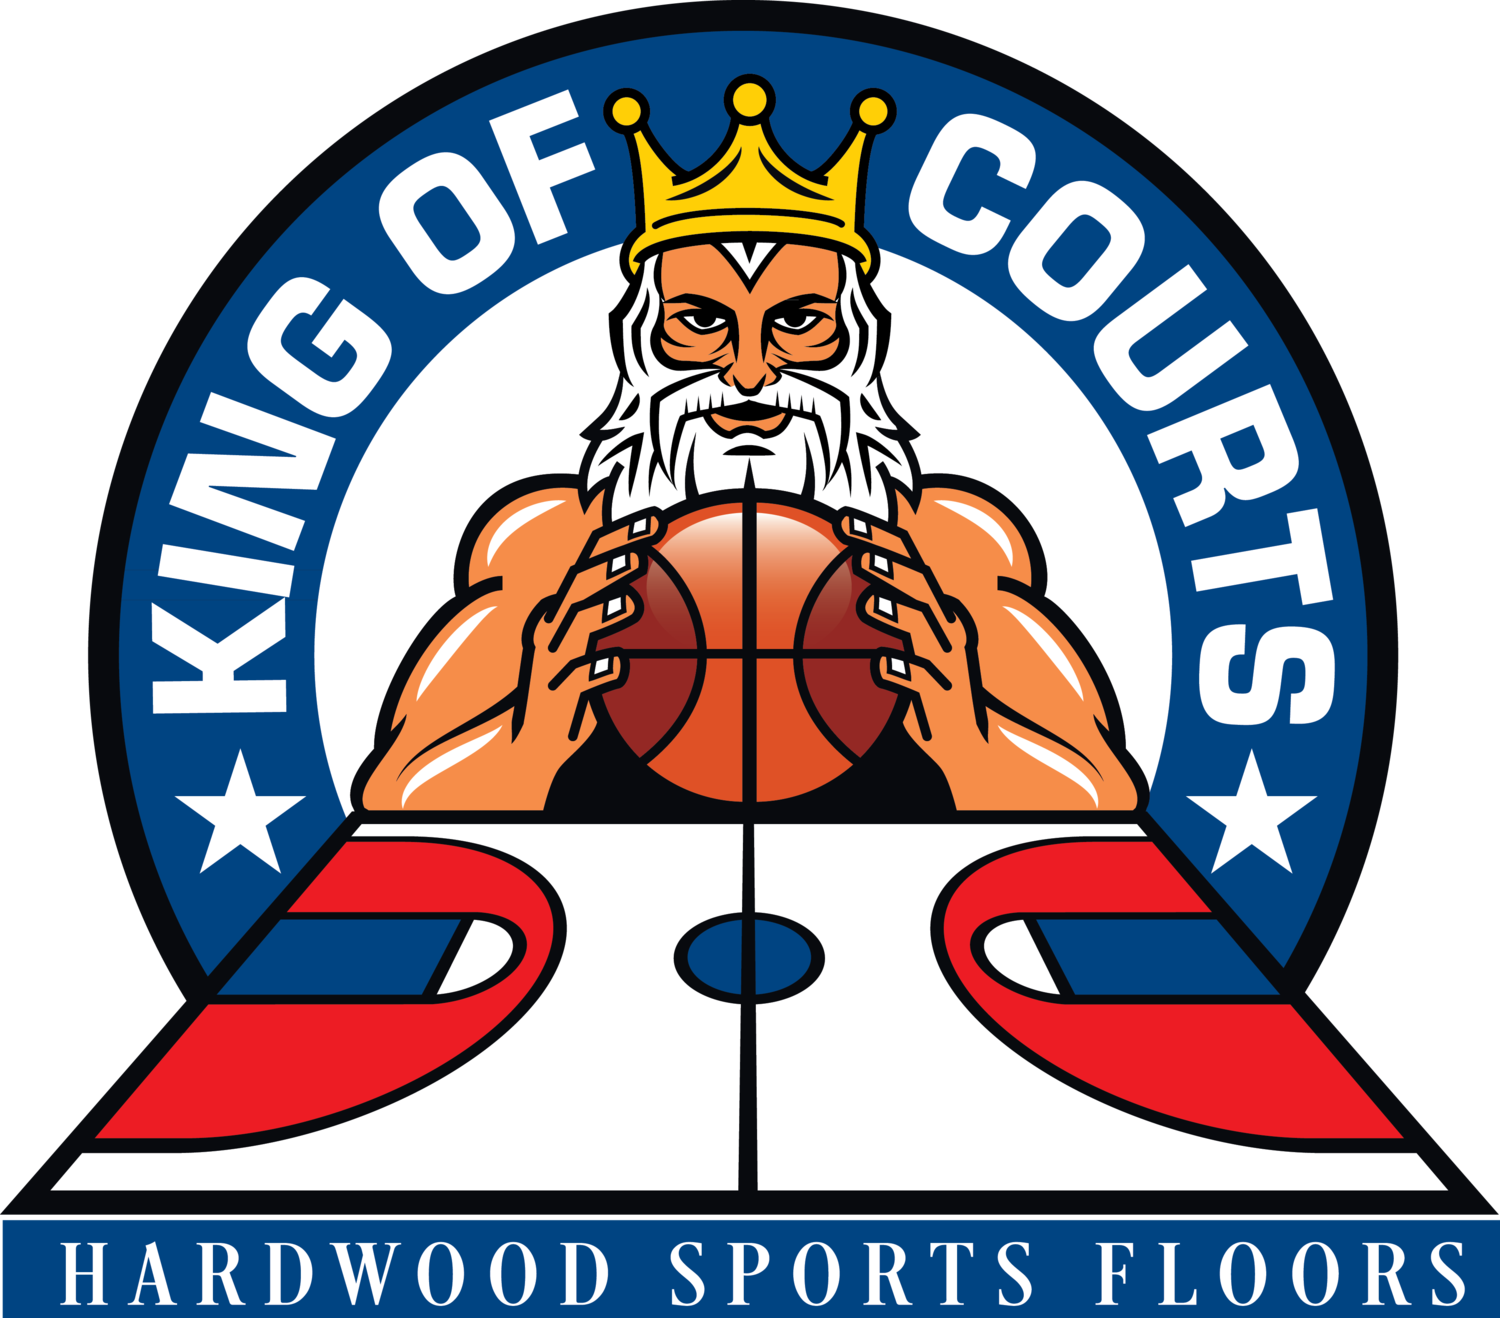 King of Courts